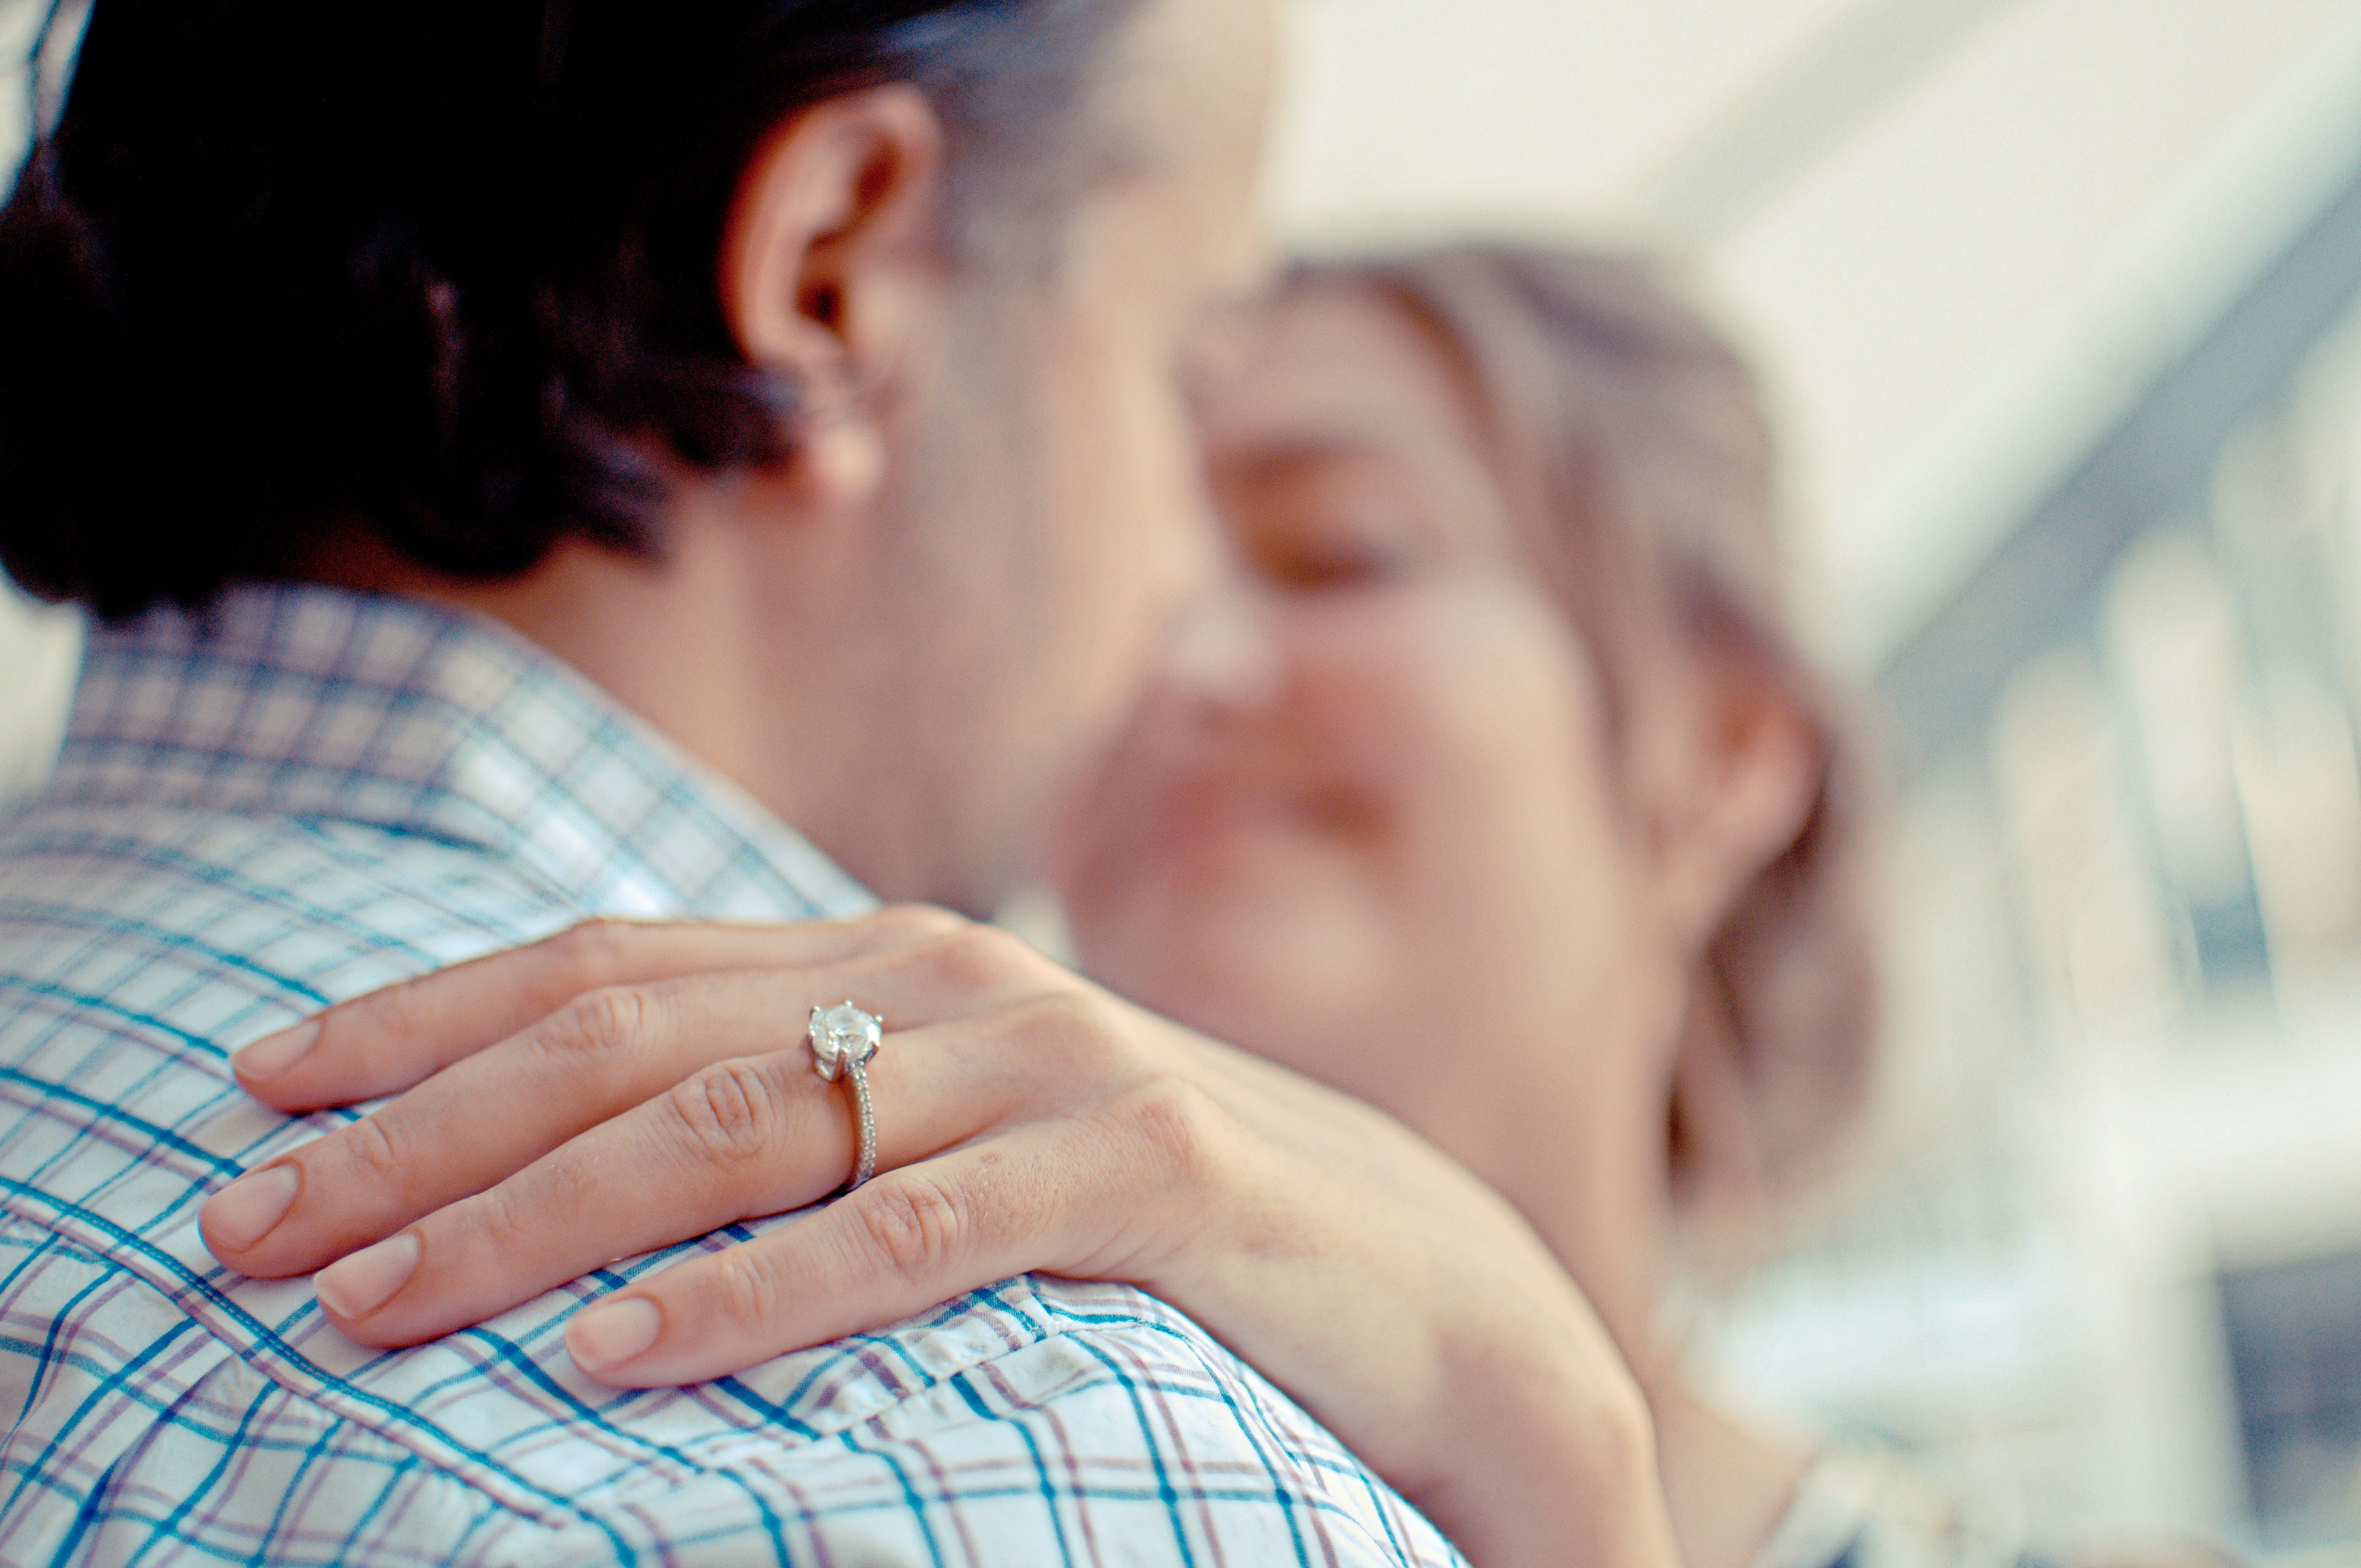 Shallow Focus Photo of Man and Woman Kissing